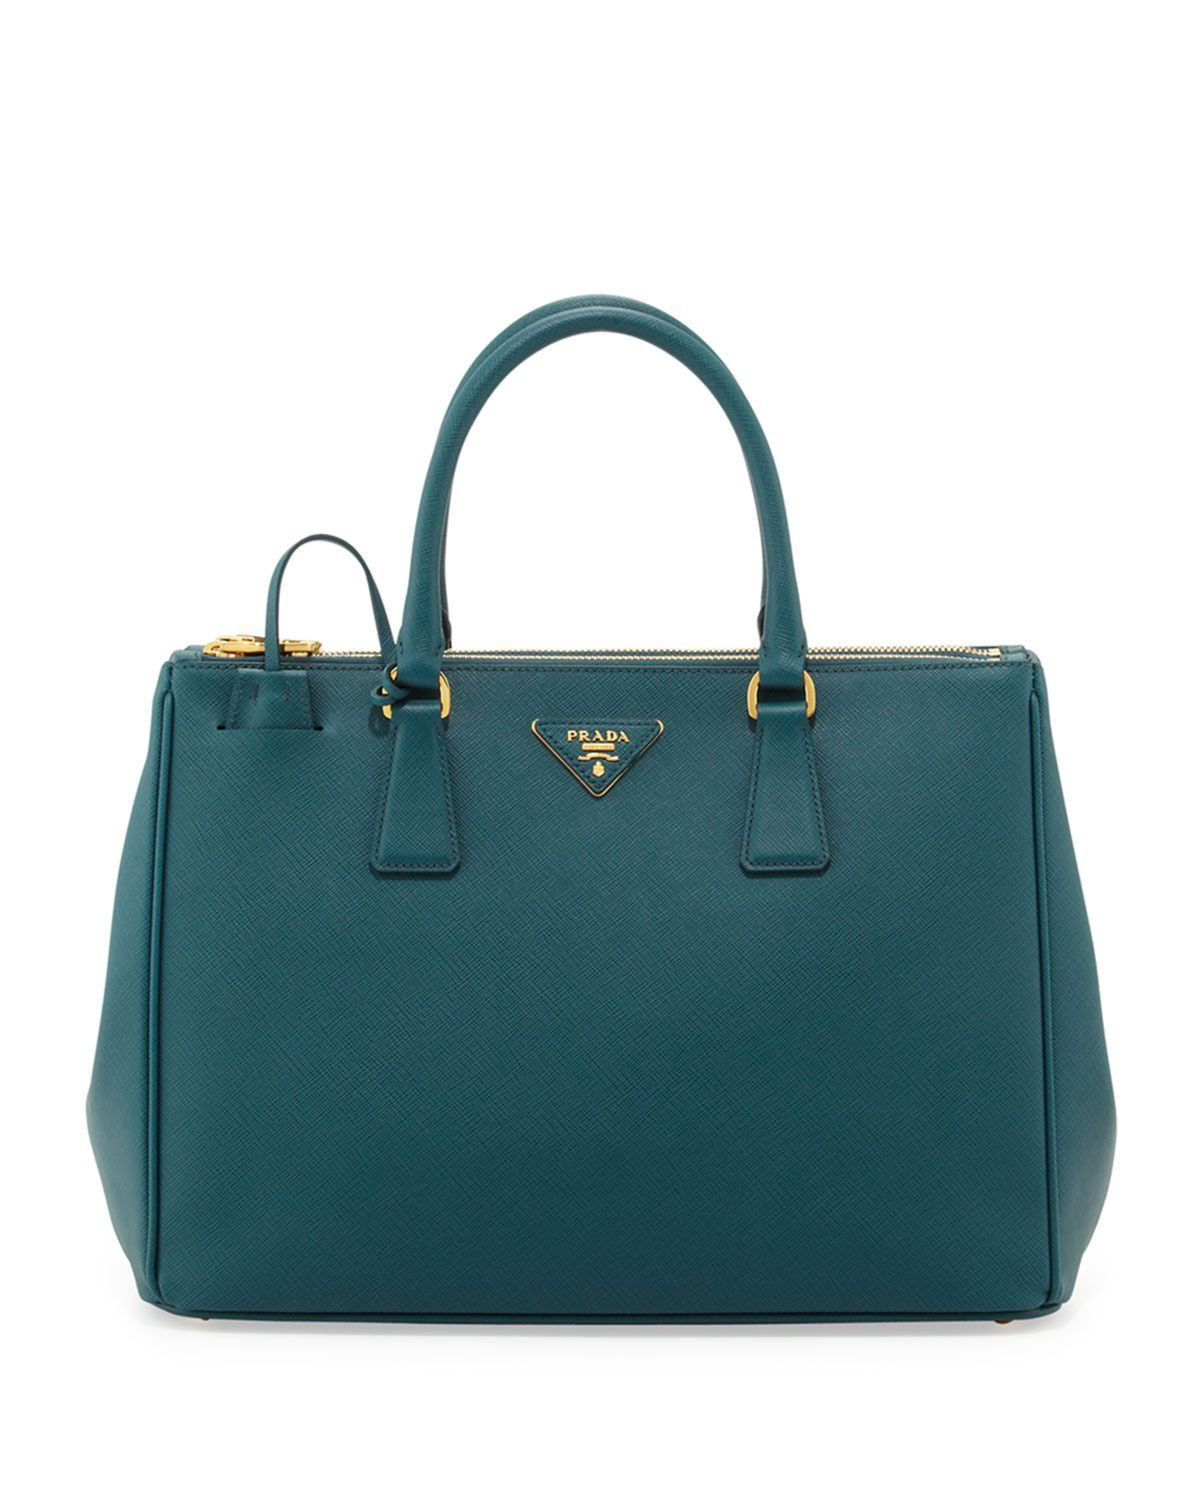 976e71a62794 Prada Saffiano Double-Zip Executive Tote Bag Teal #Handbags | Gucci ...